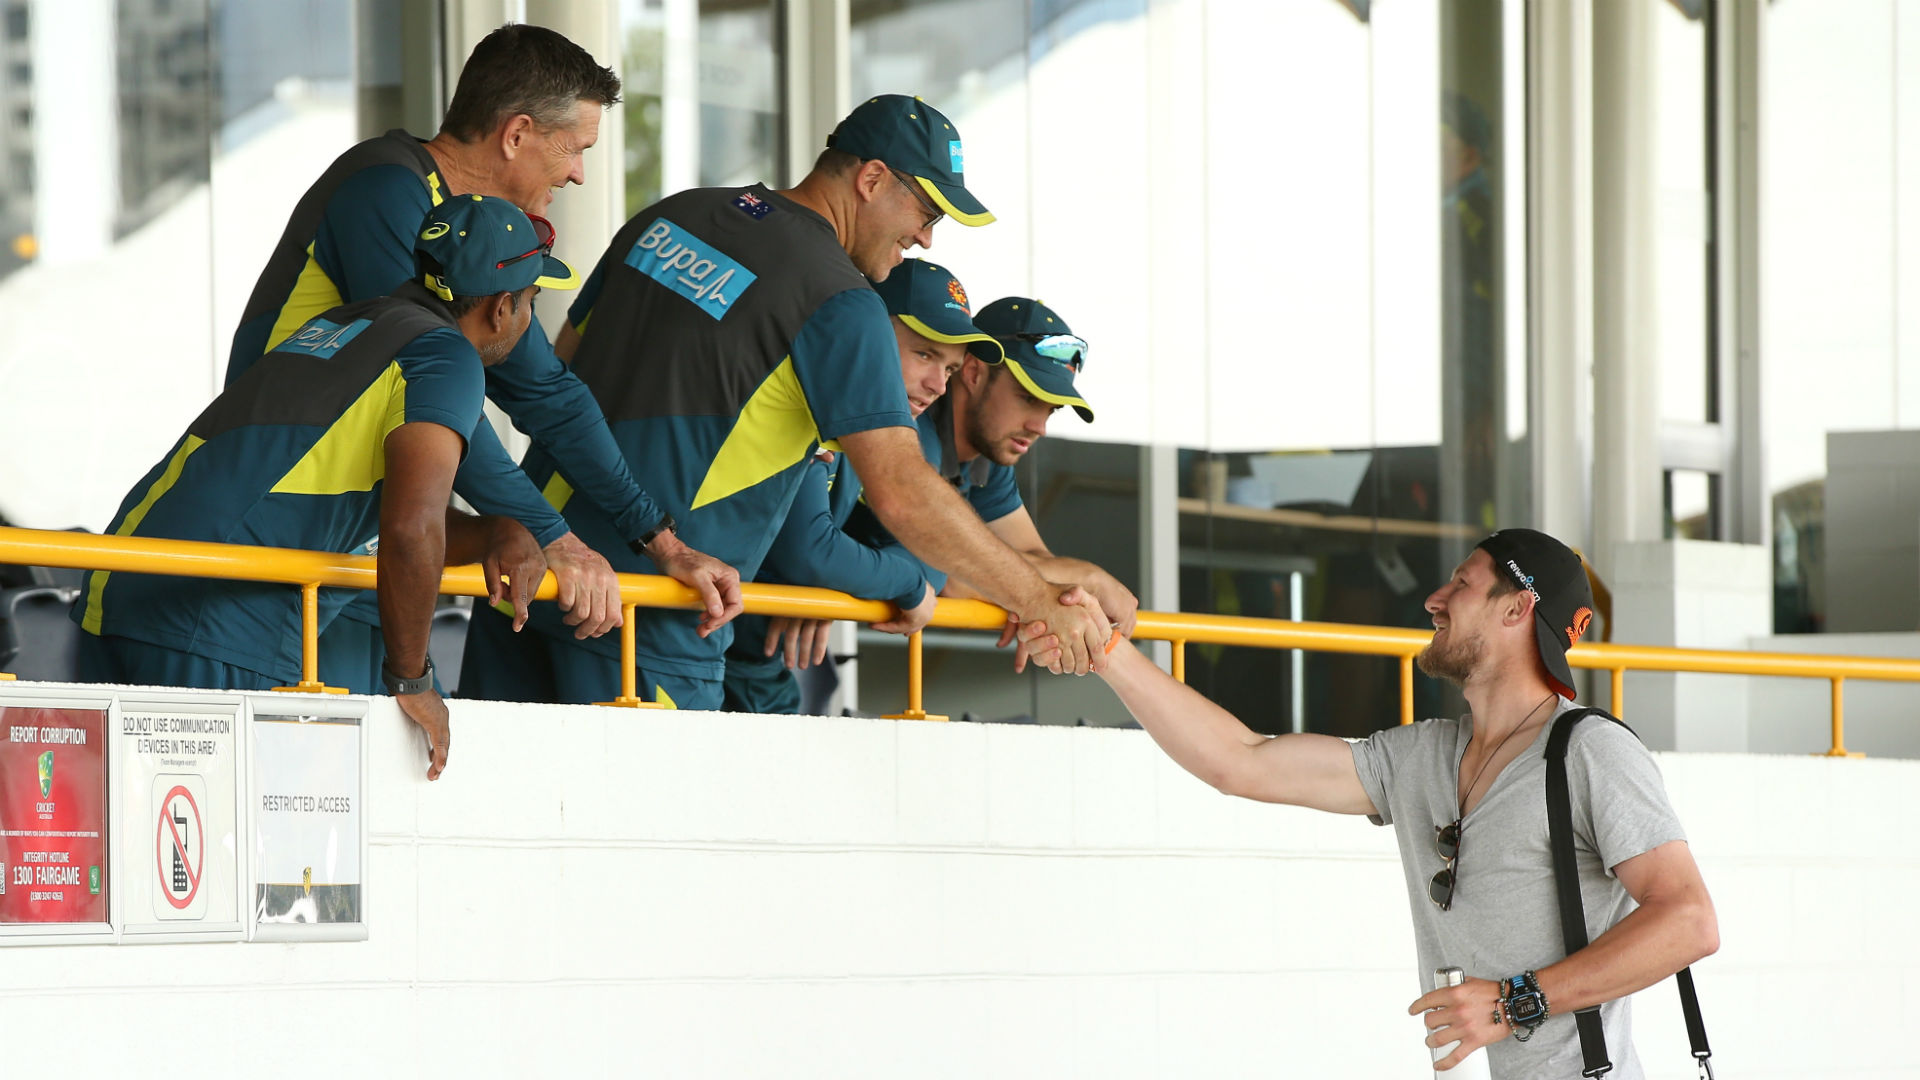 Bancroft to return, teenager Lamichhane to fly the flag for Nepal in Big Bash